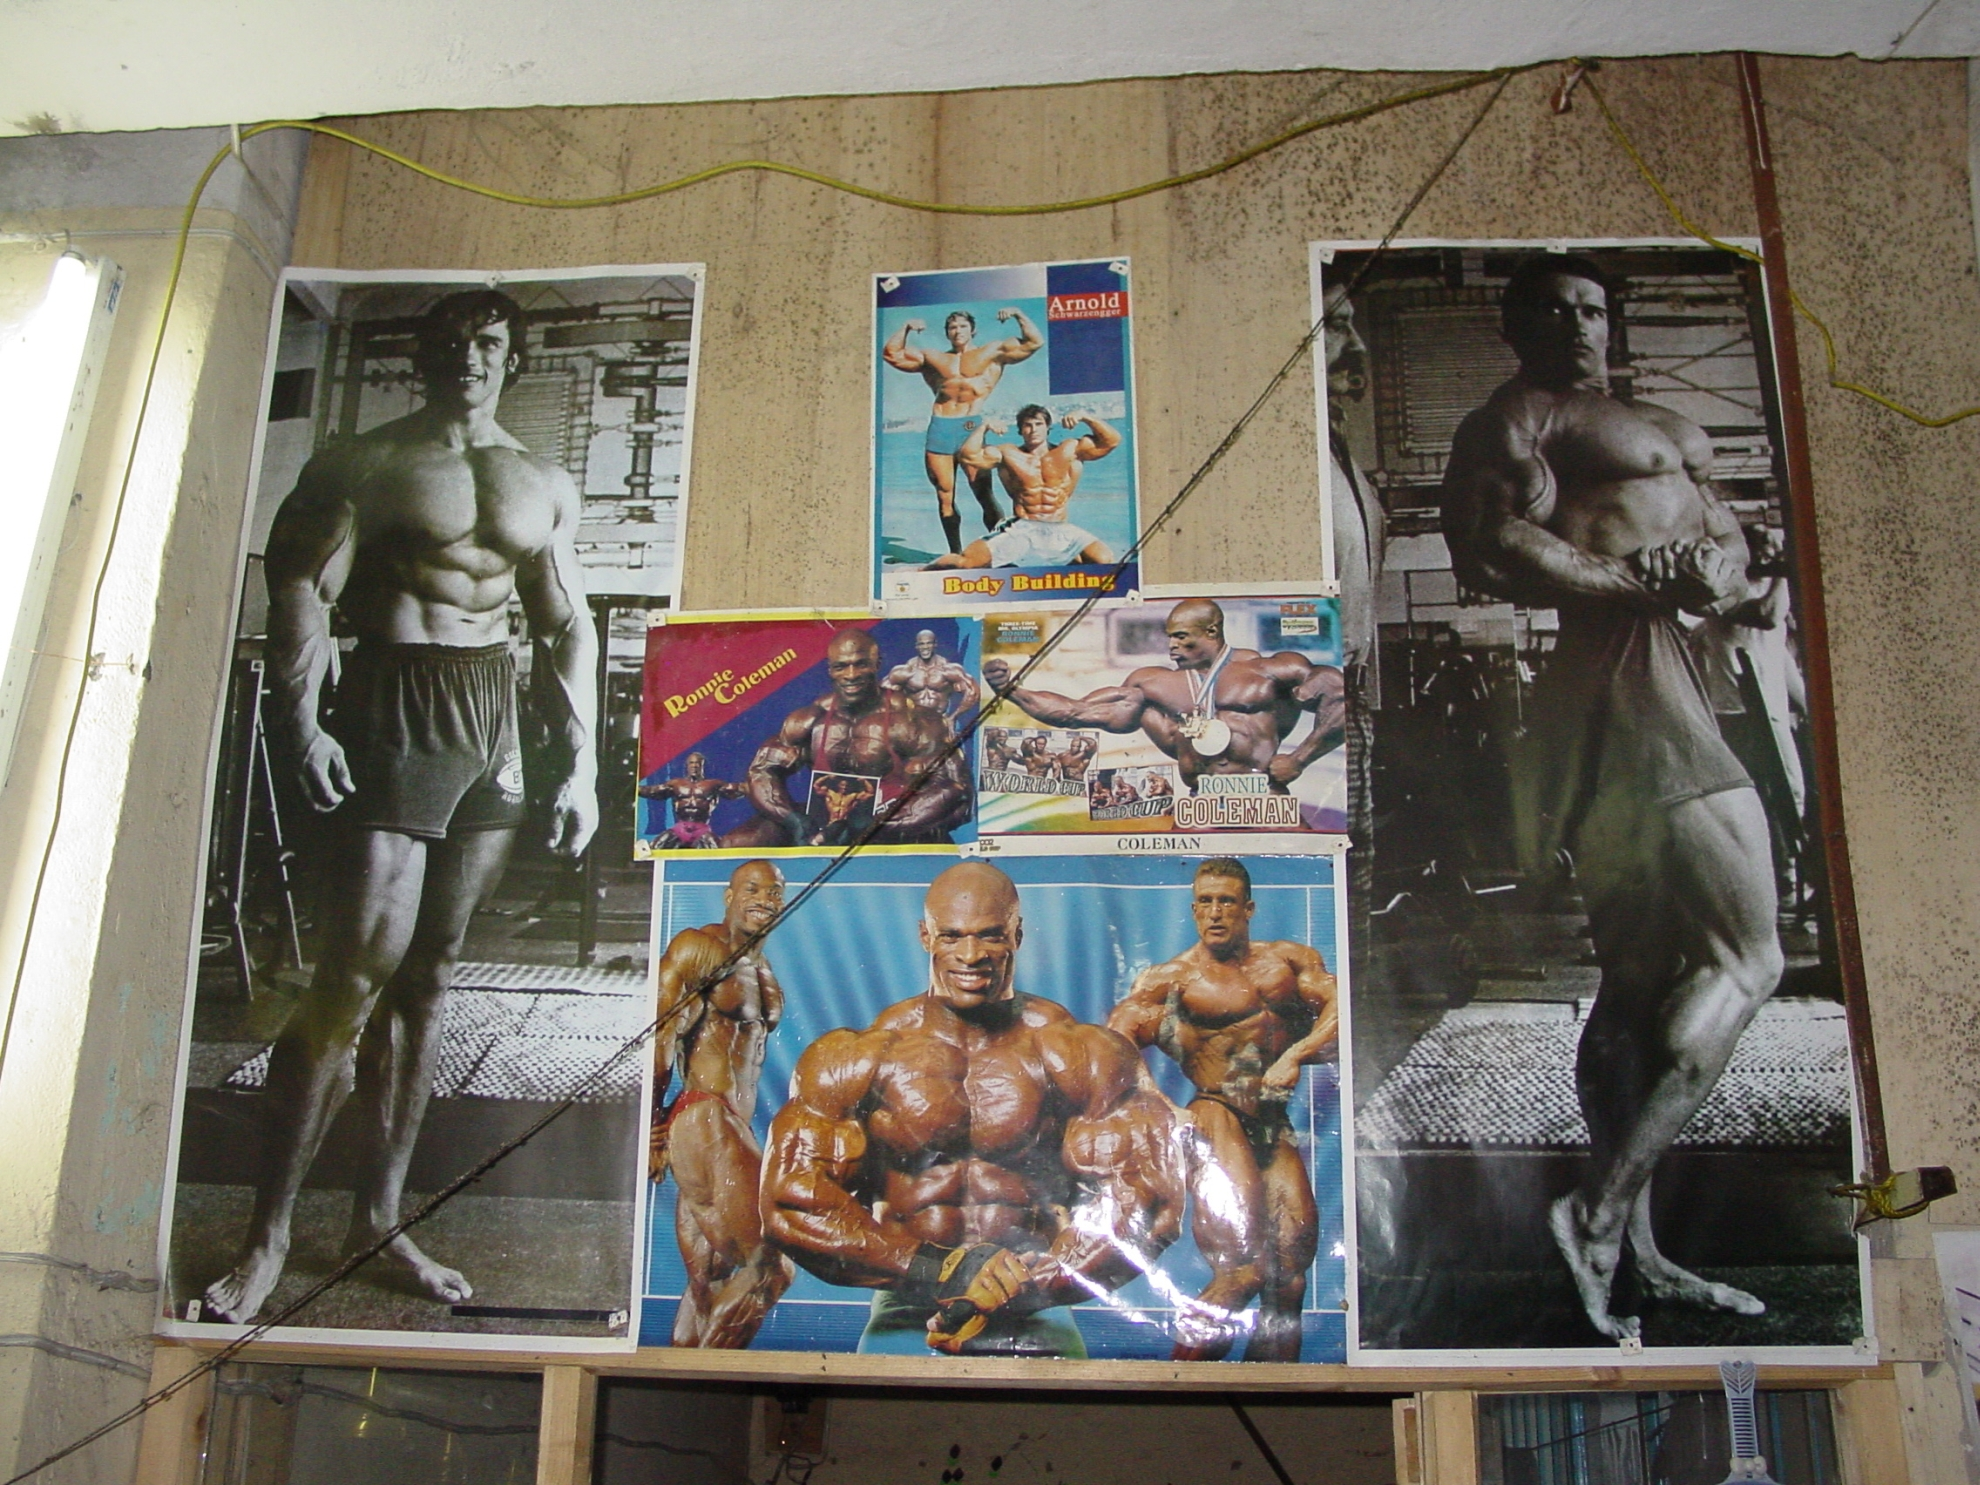 Arnold Schwarzenegger is a big name among Afghan bodybuilders. Photo: Jens Kjær Jensen, 2003